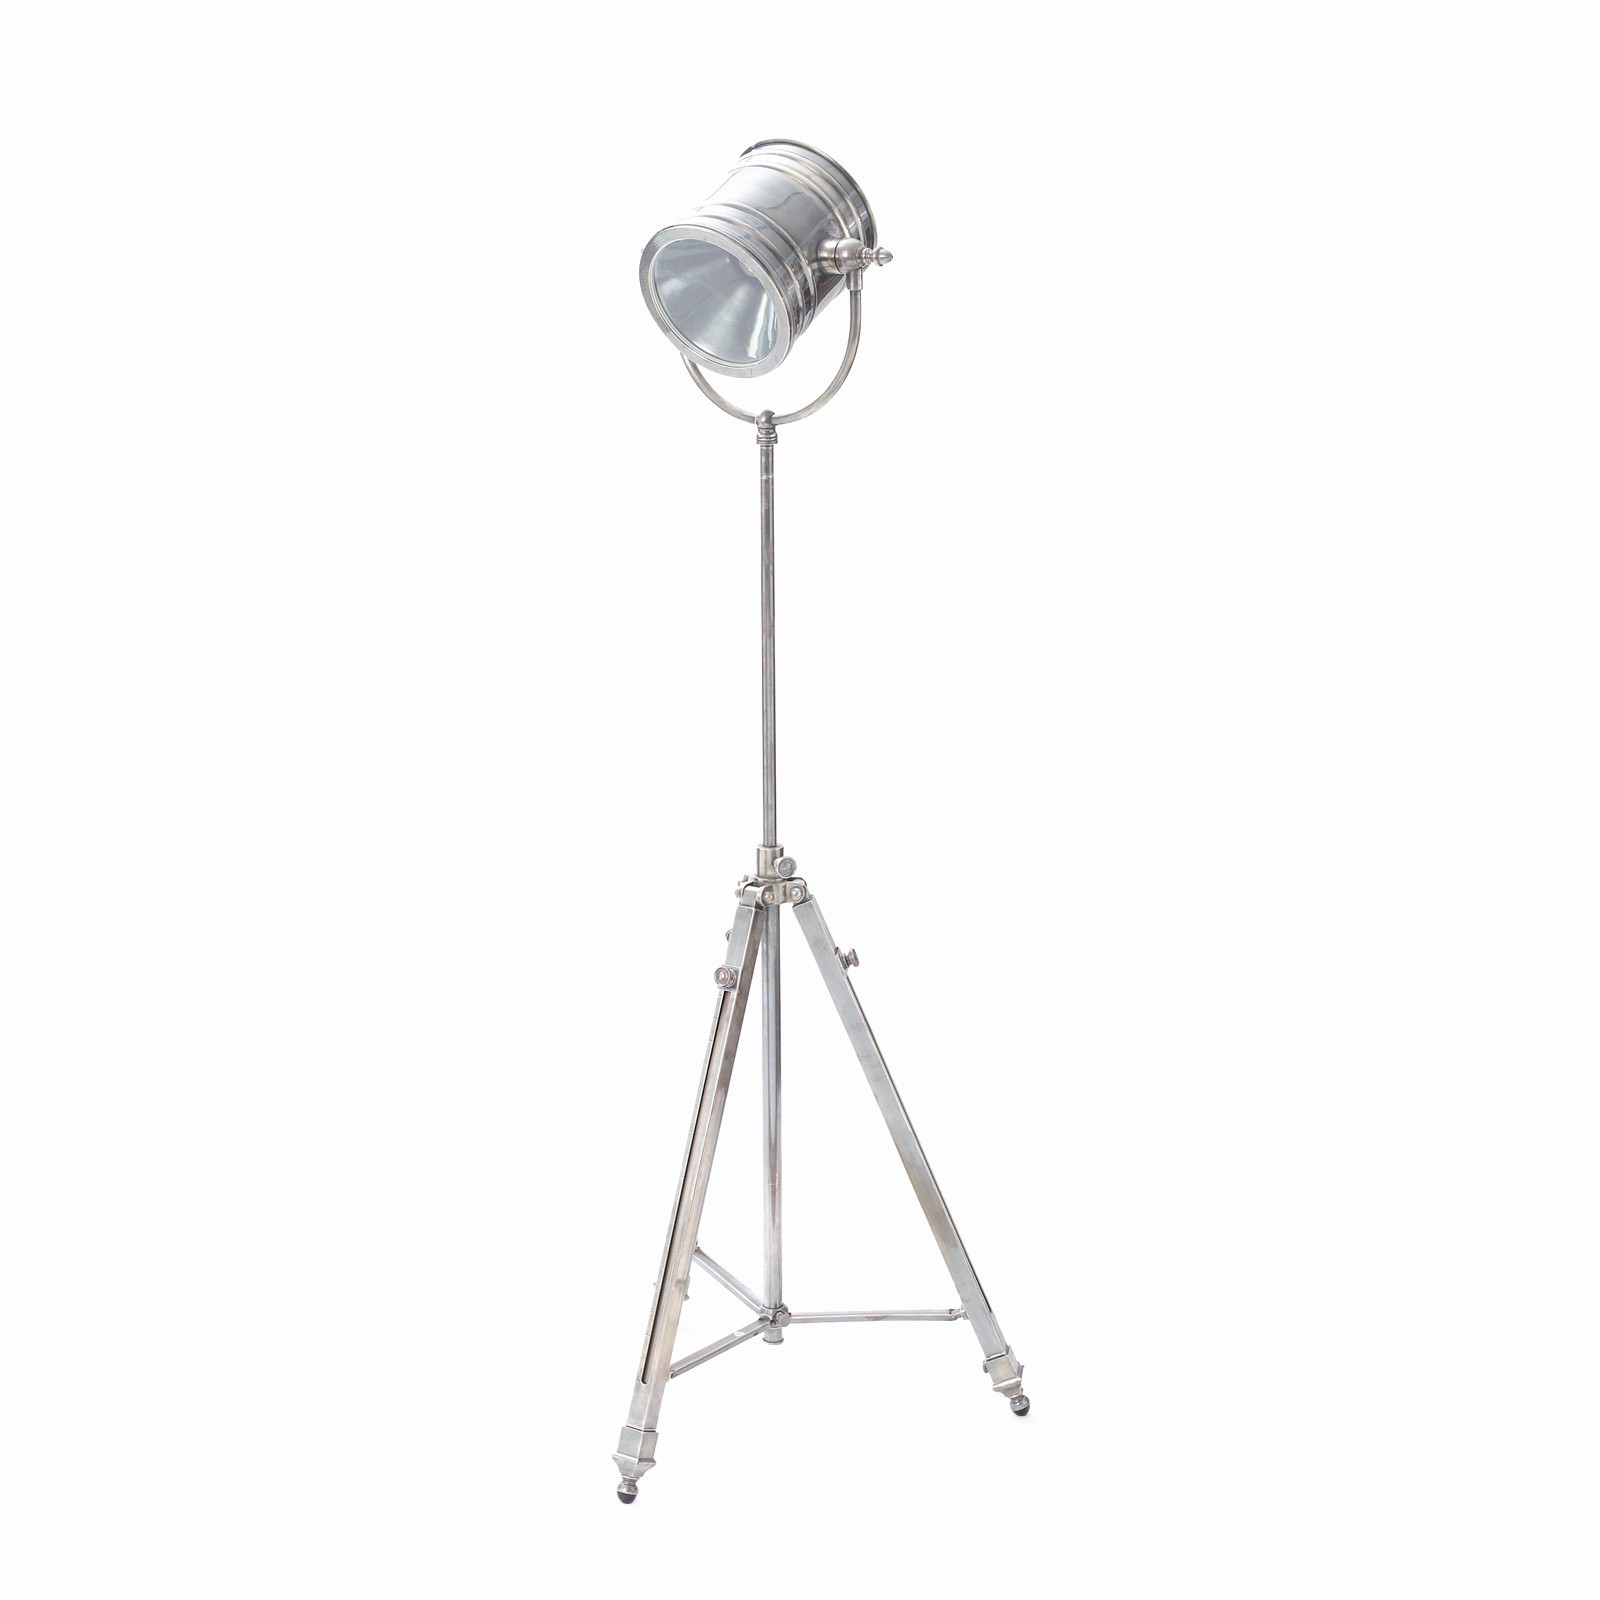 36 inch floor vase of tall floor standing lamps new dreaded tripod floor lamp picture within tall floor standing lamps new dreaded tripod floor lamp picture inspirations home lighting studio